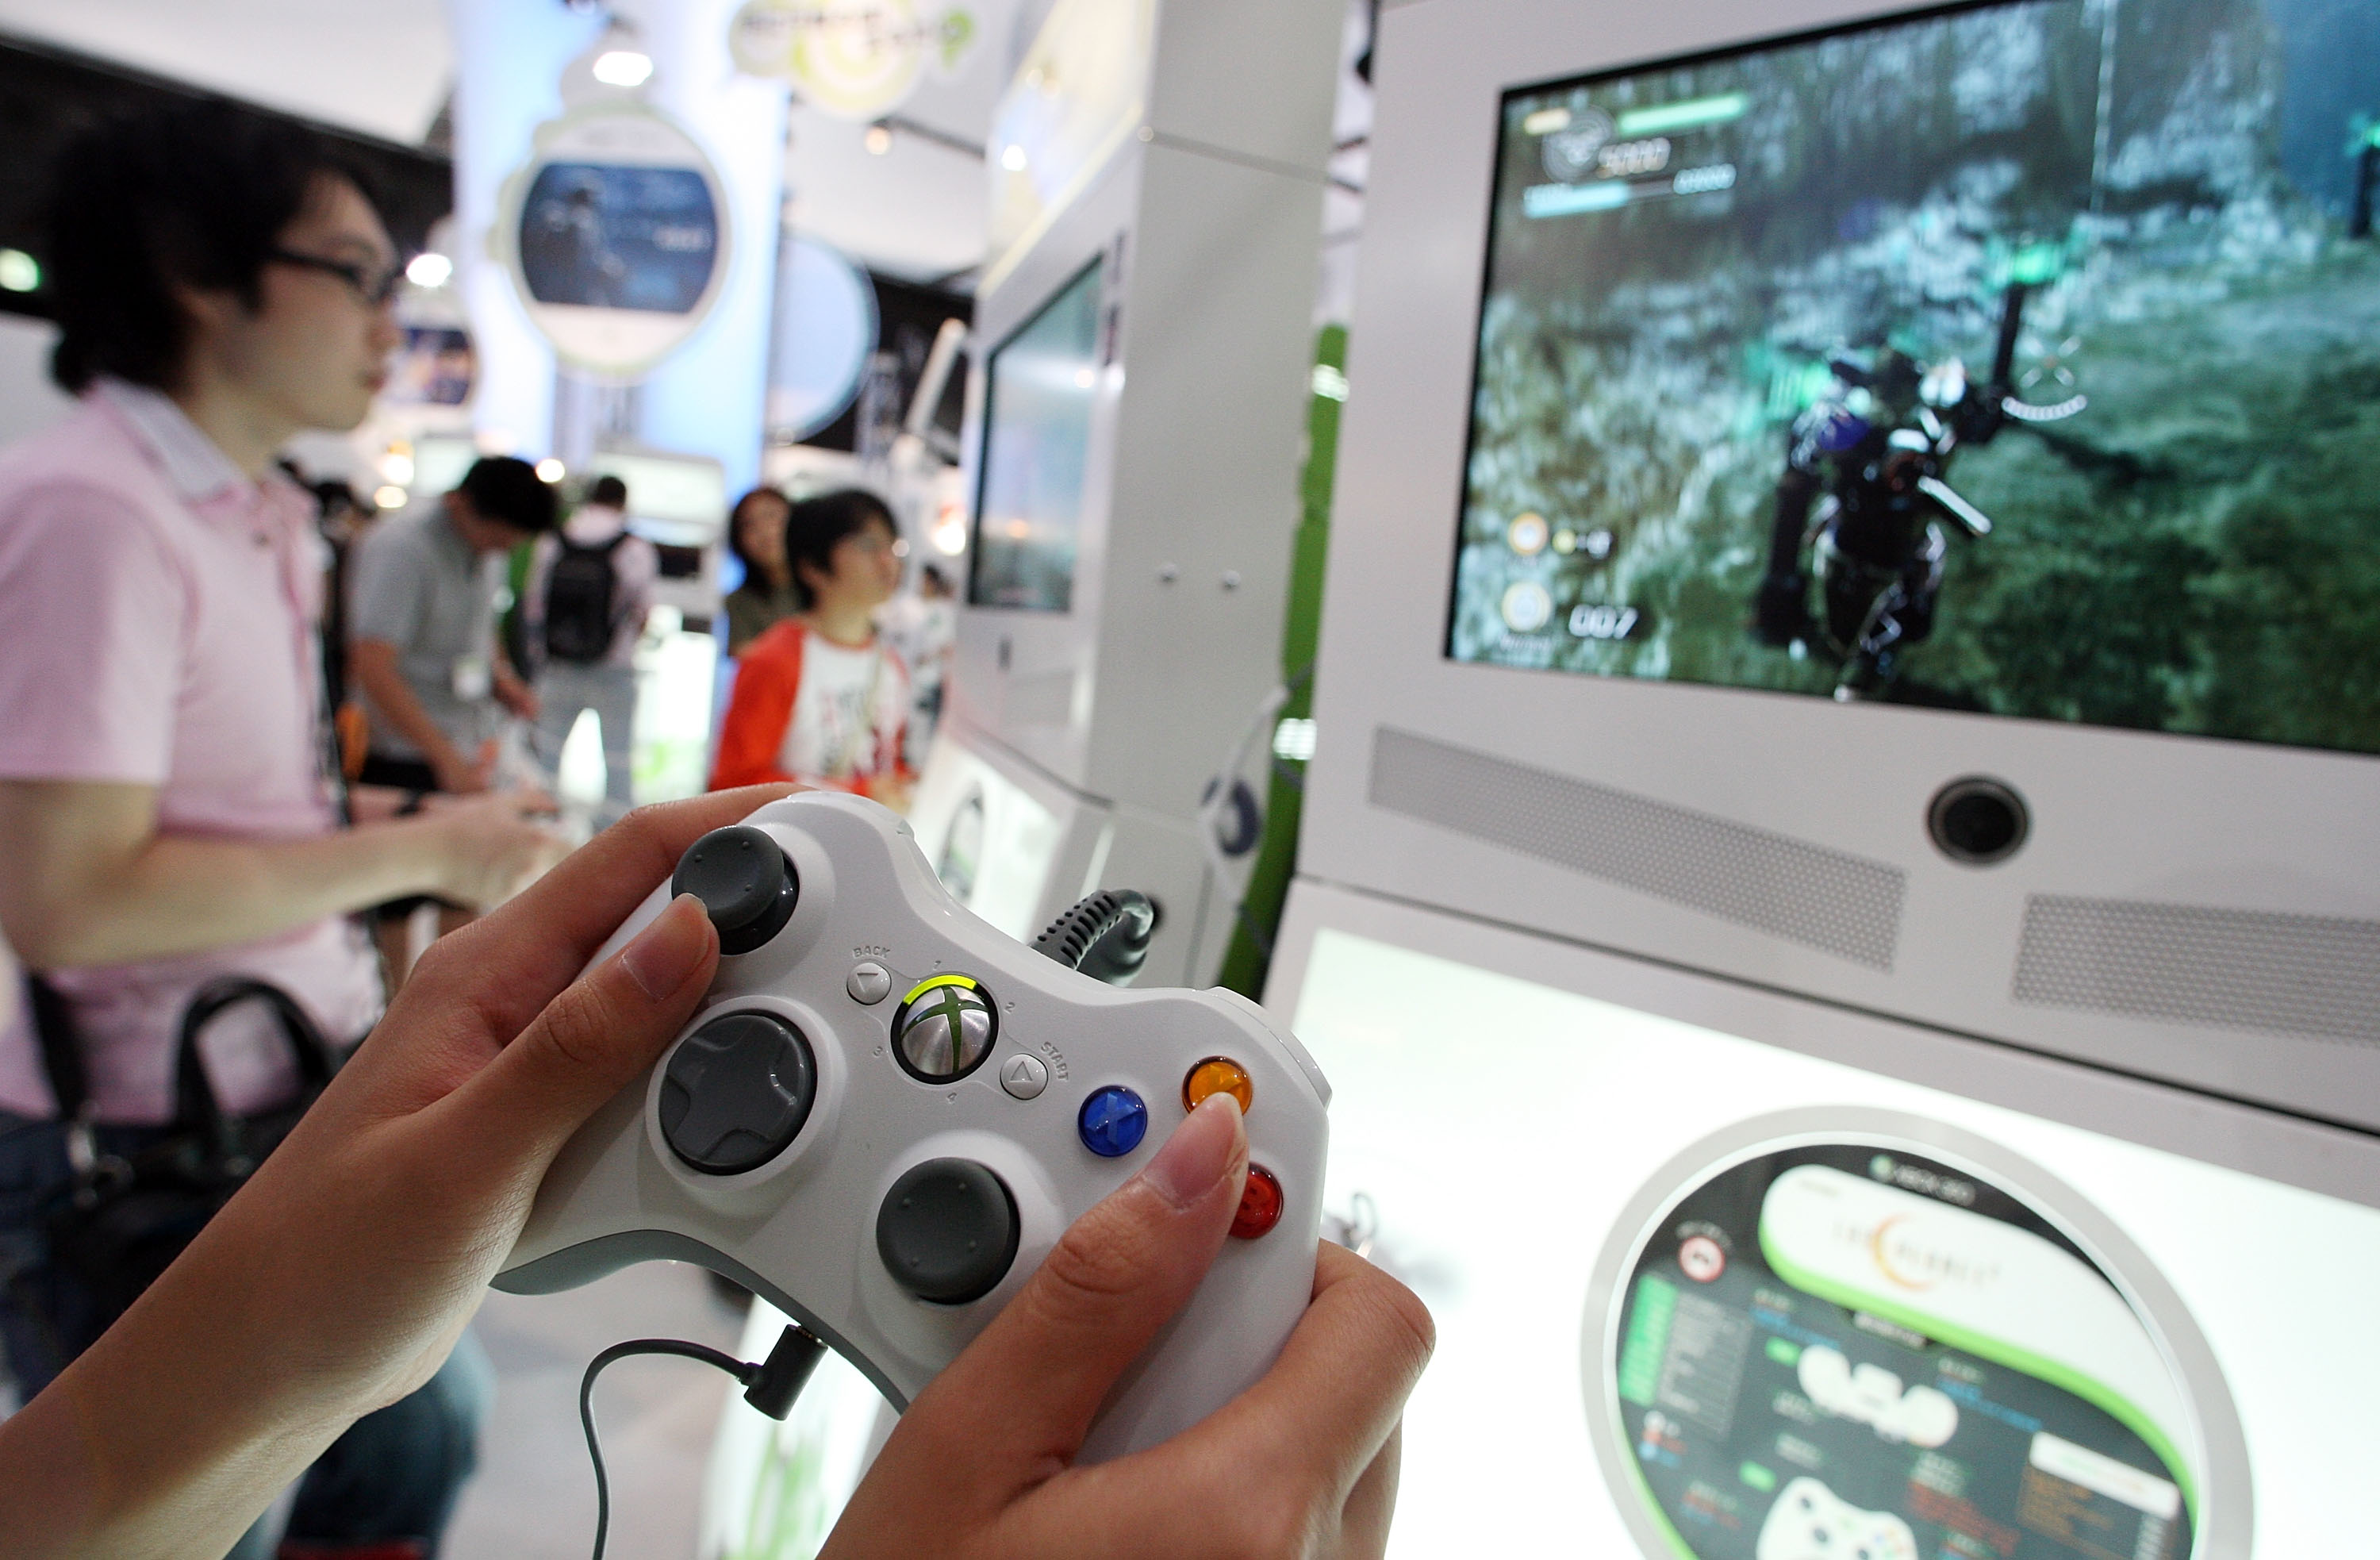 Visitors play with the XBOX 360 at the Microsoft booth during the Tokyo Game Show 2009 press and business day at Makuhari Messe on September 24, 2009 in Chiba, Japan.